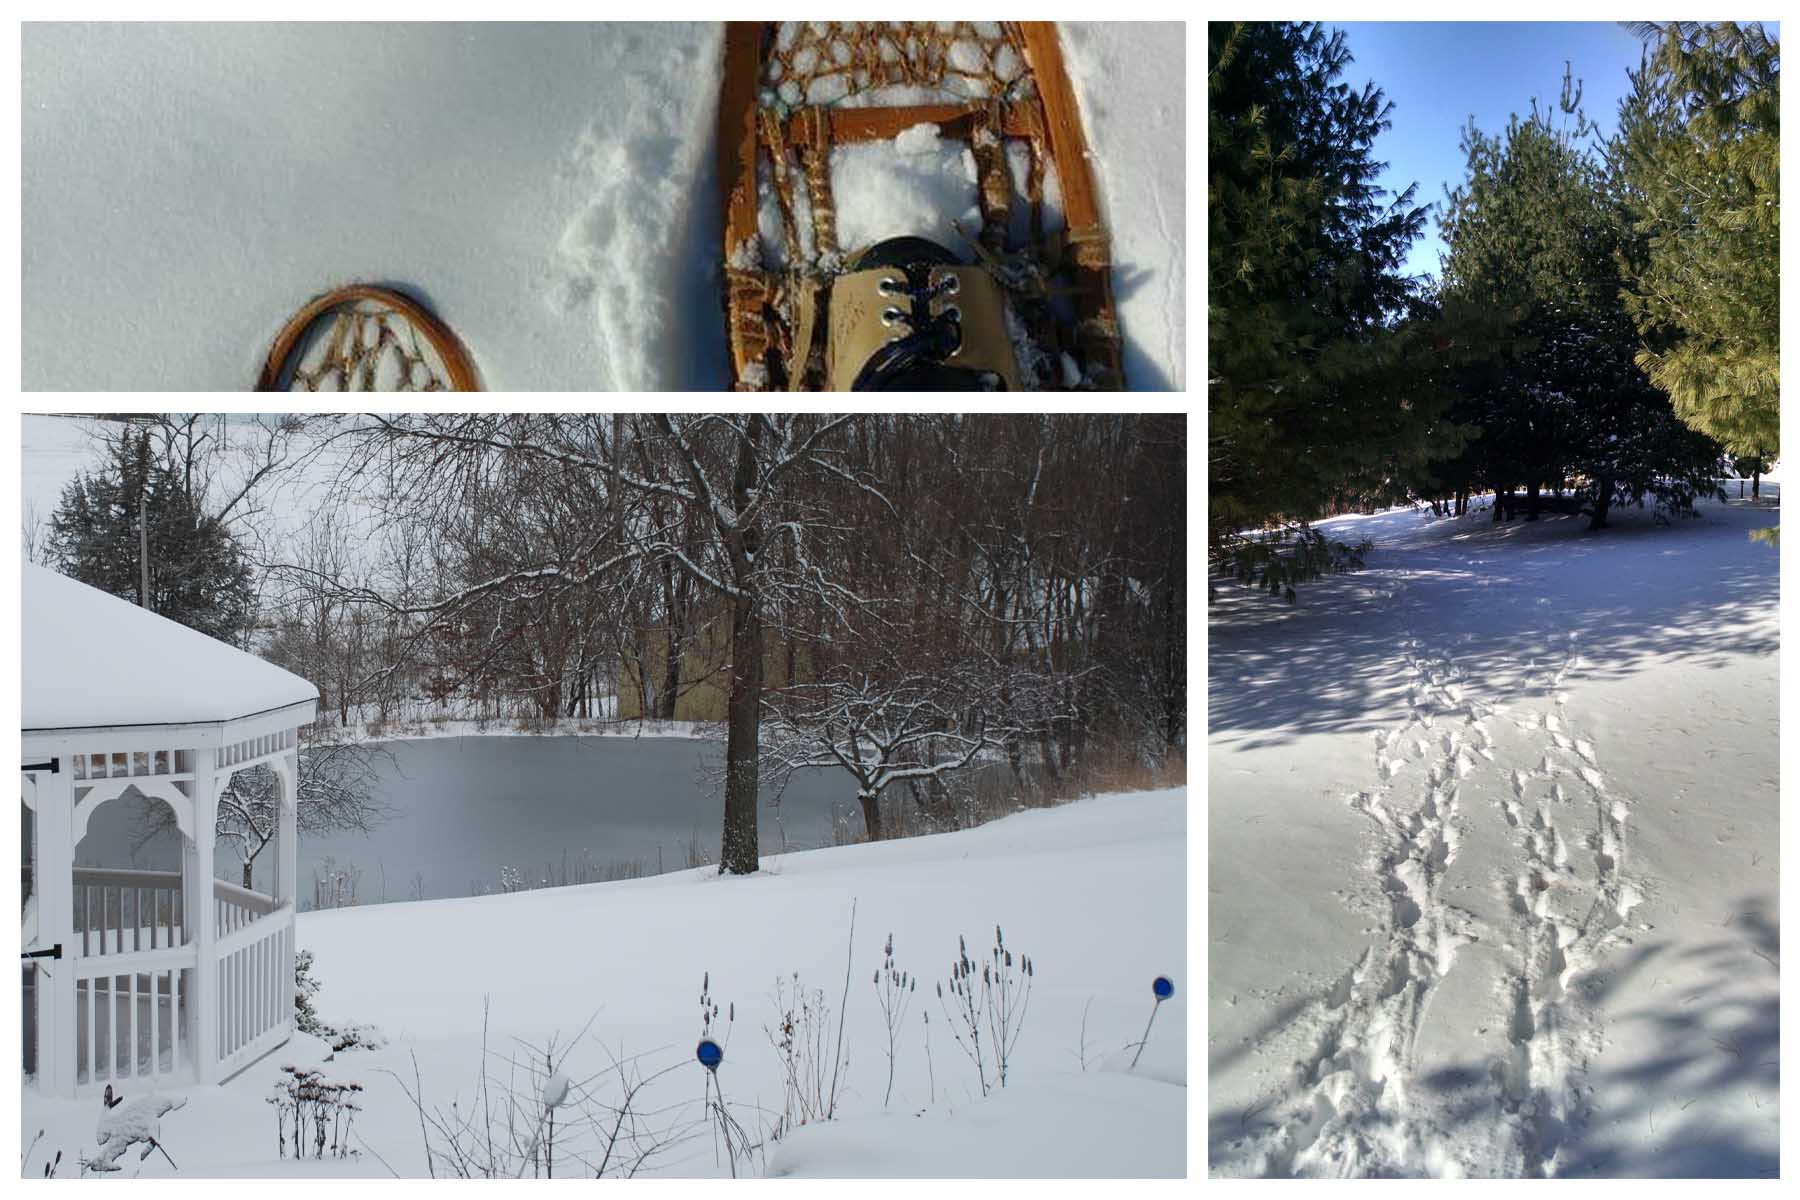 snowshoes and winter scenes at Hawk Valley Retreat